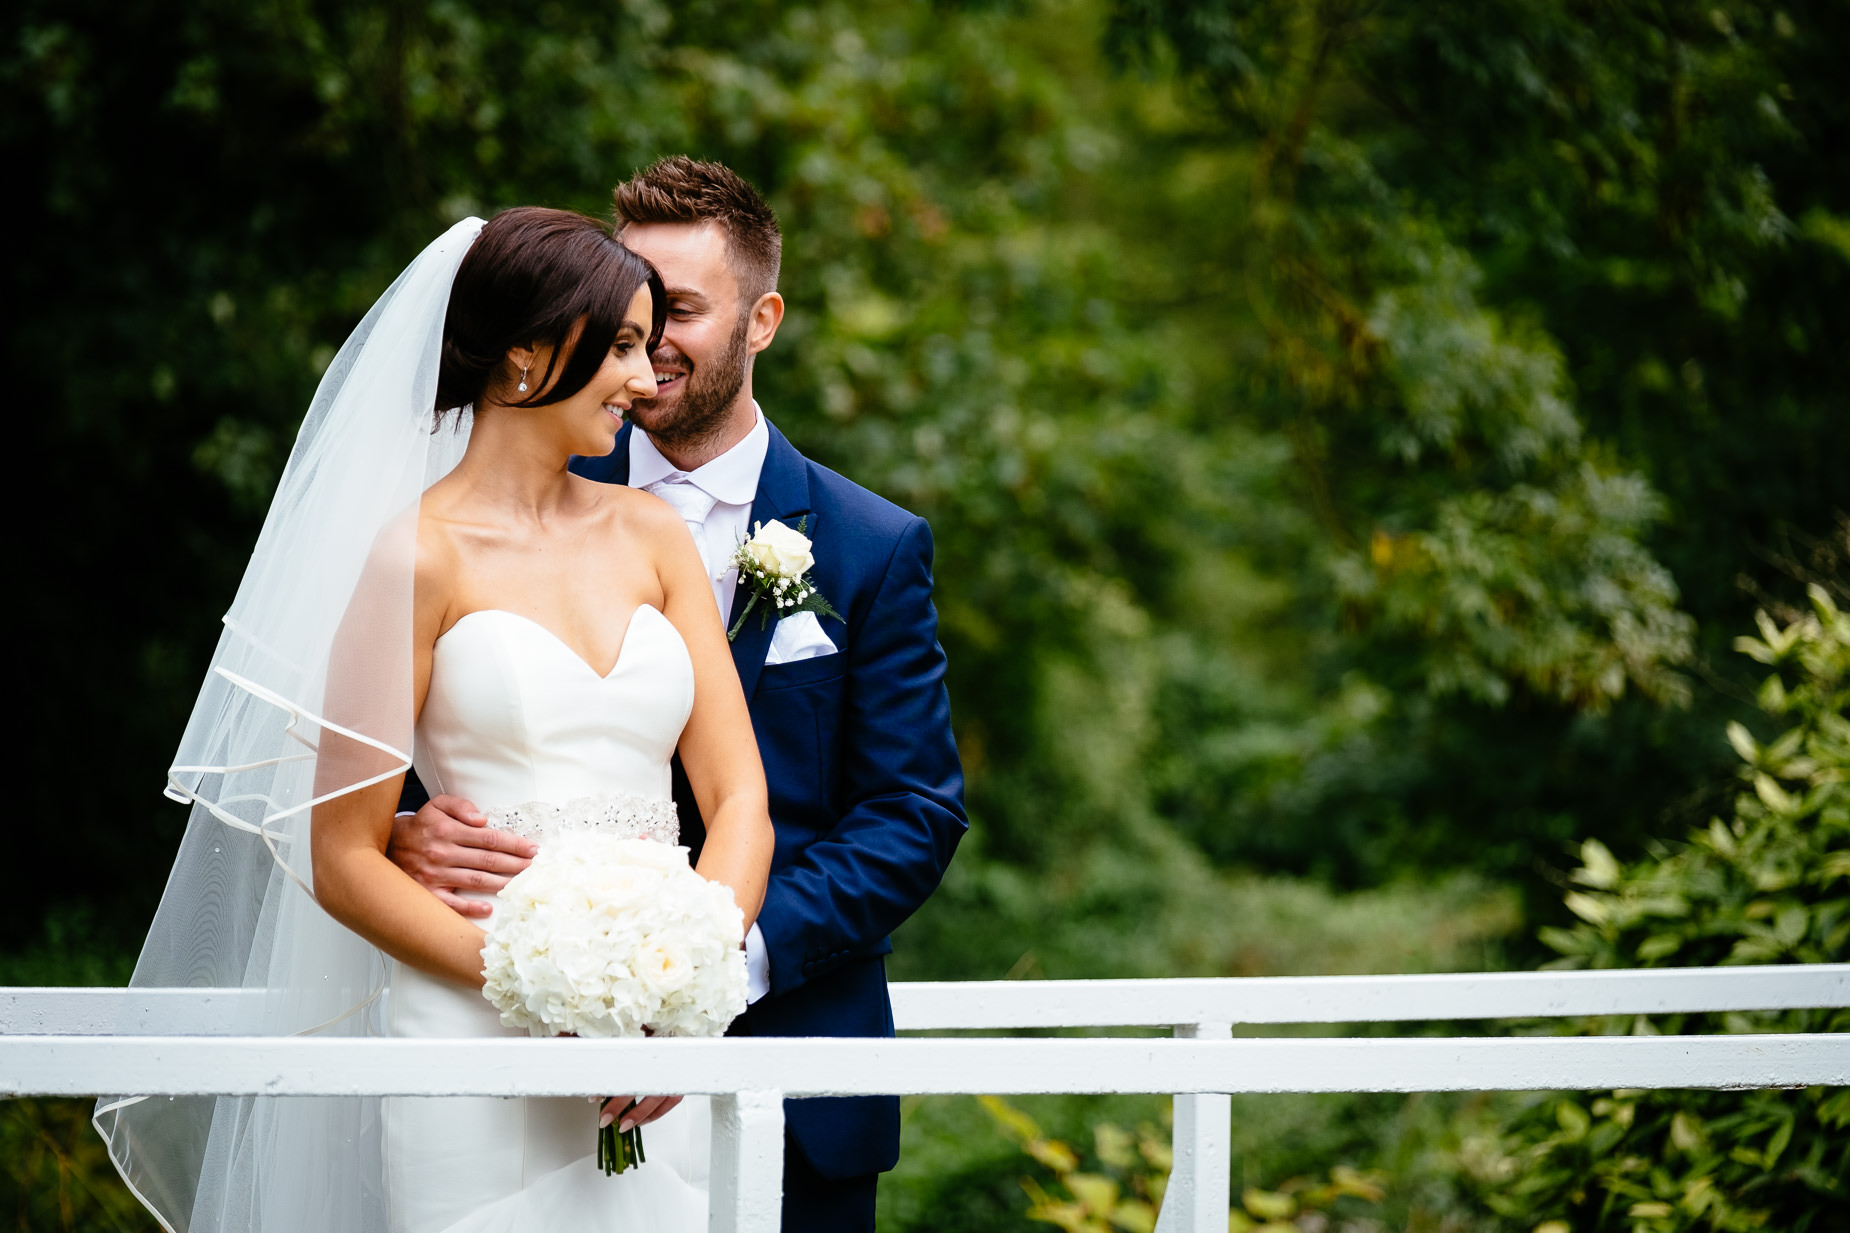 bride and groom embracing on a bridge